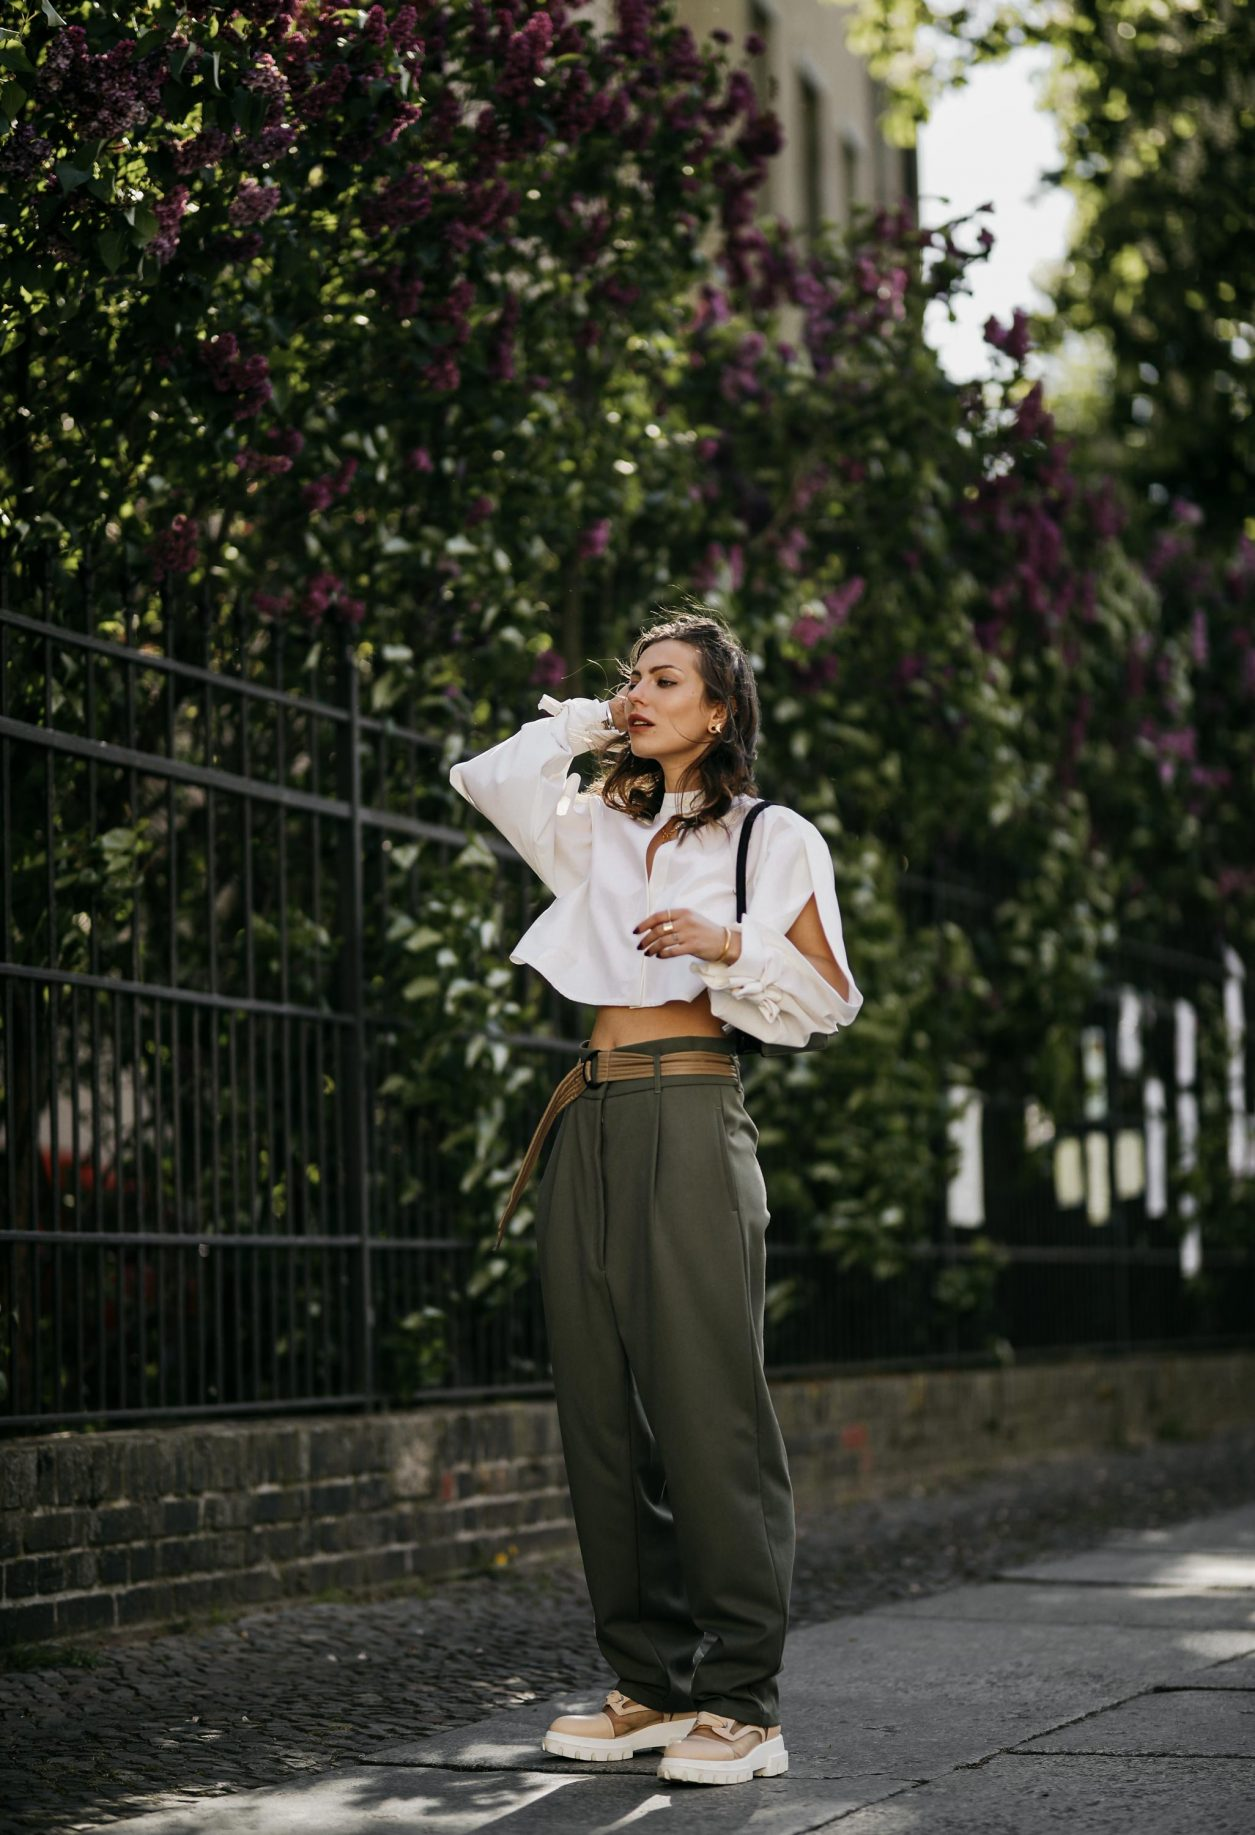 Anzeige | Streetstyle by Masha Sedgwick, photos: Jeremy Moeller | Spring summer fashion trends, everyday outfit inspiration, military chick city look: wearing khaki boyfriend pants by Munthe, white cropped Nobi Talai blouse, mini khaki Lala Berlin leather bag, Agl transparent nude boots